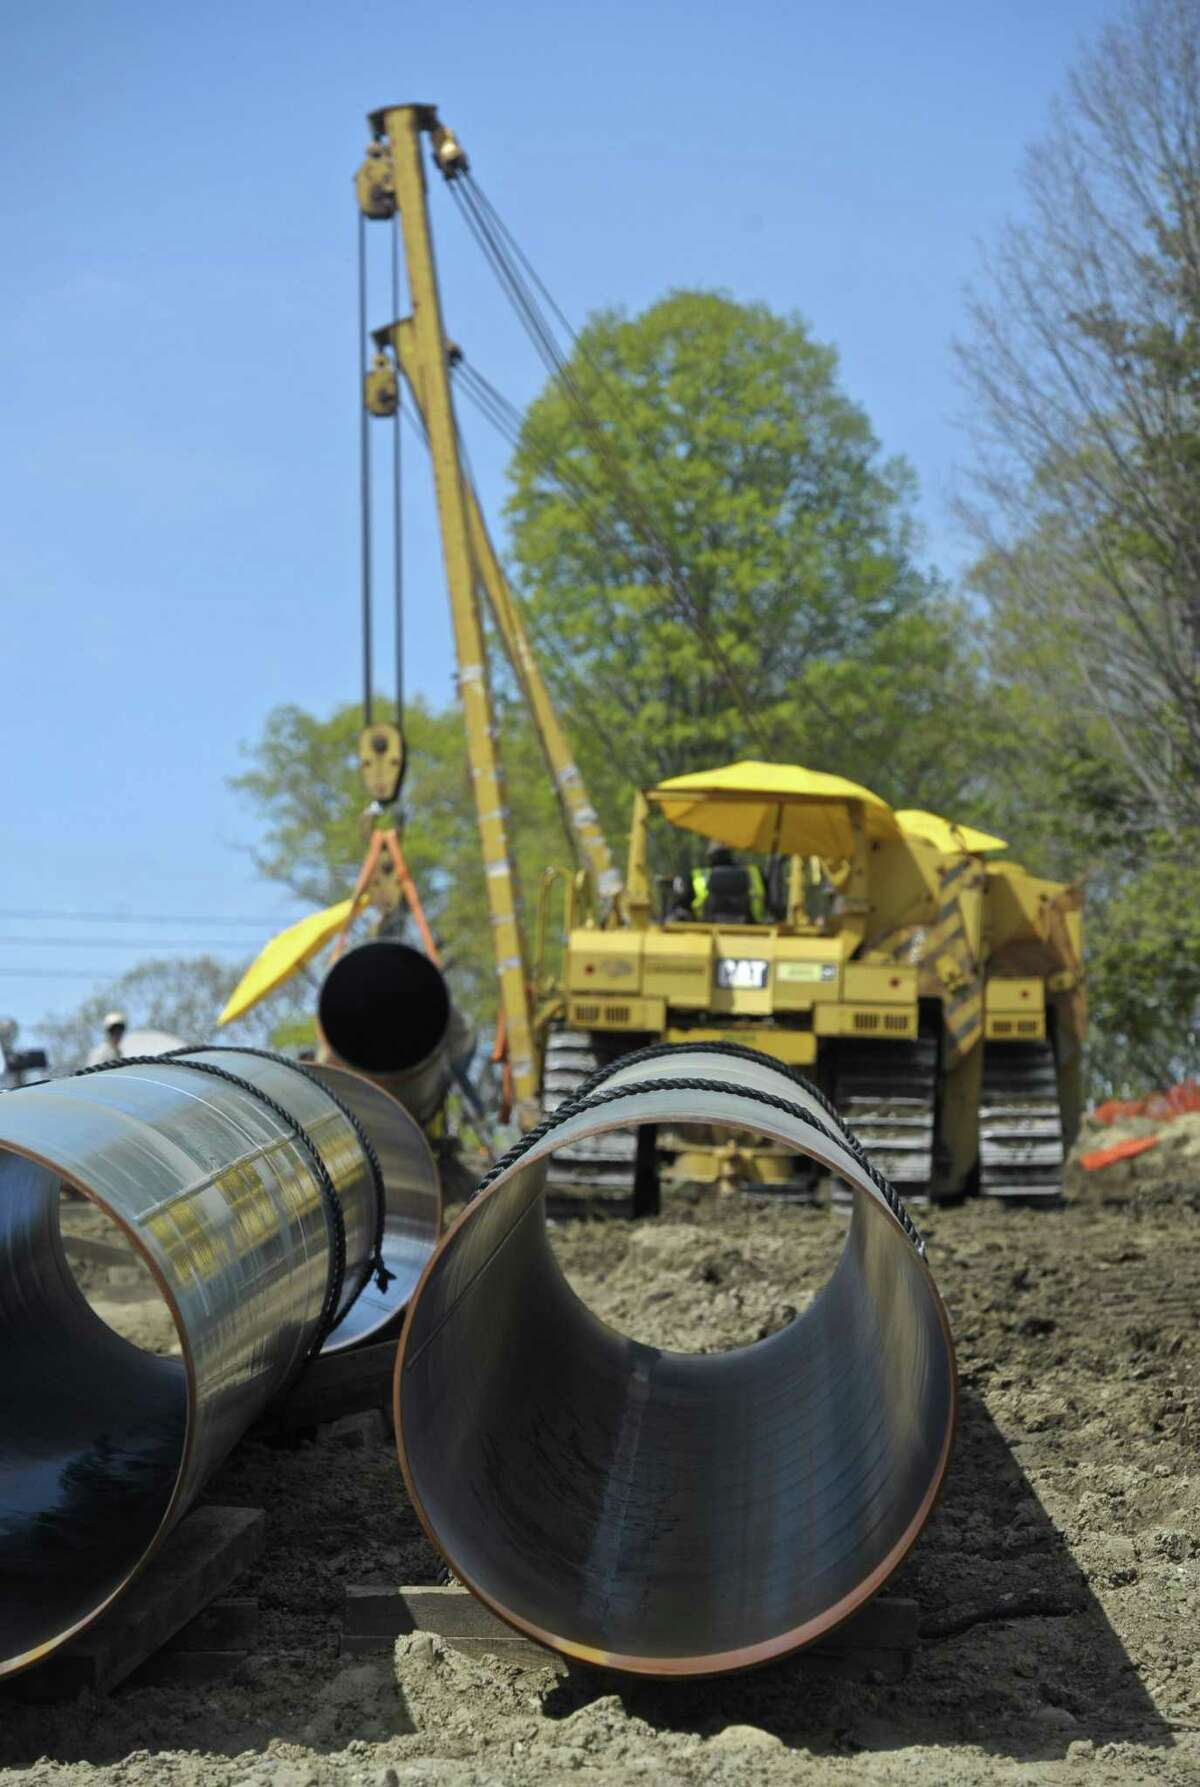 Construction on the Algonquin pipe line expansion project in Danbury, Conn., in May 2016.